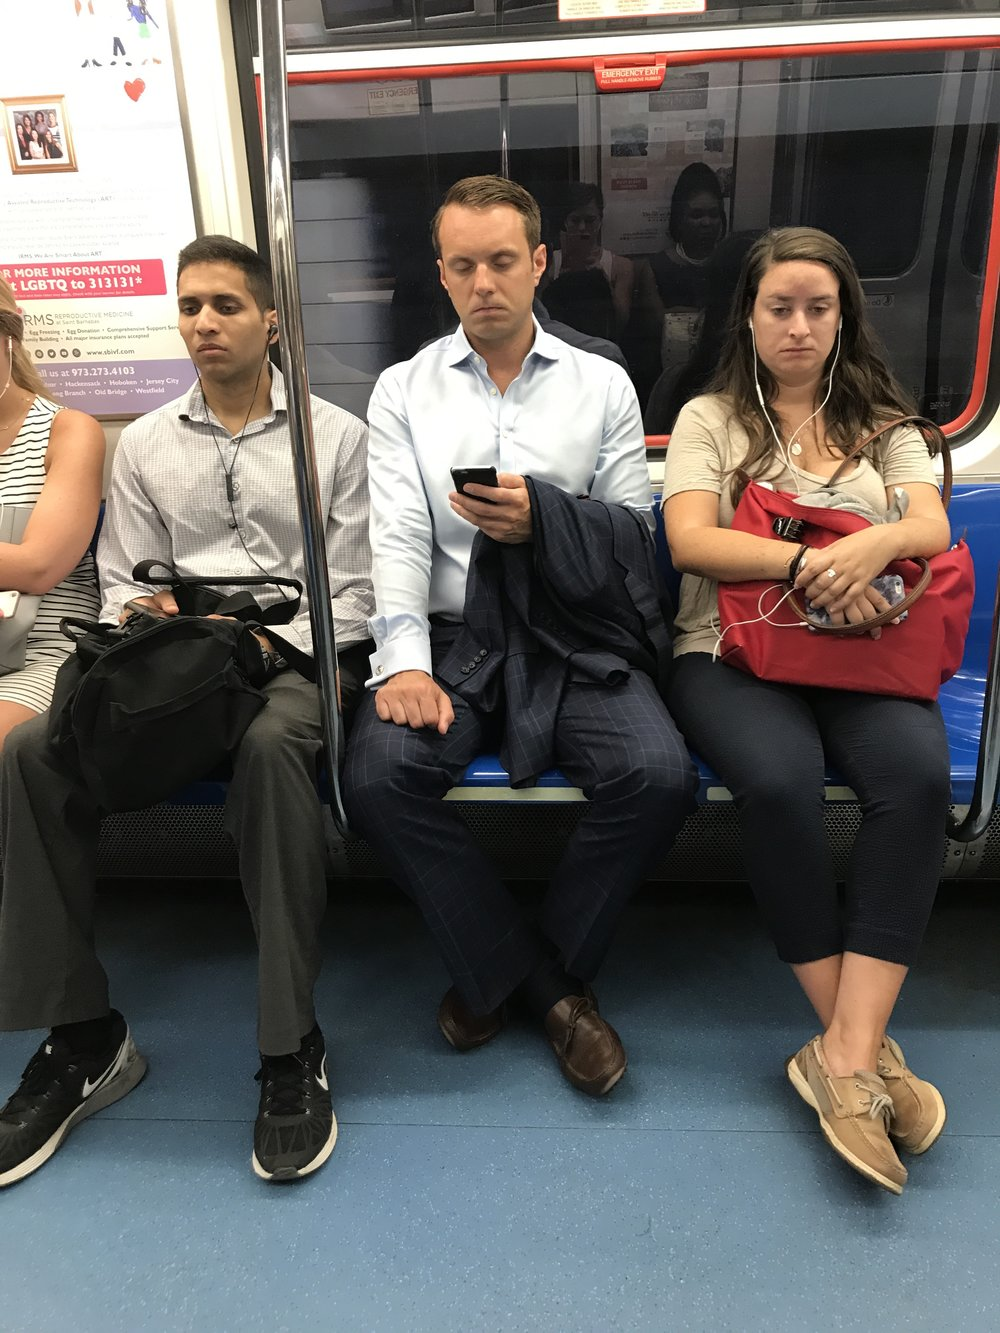 An example of man spreading on the PATH, the woman next to him looks THRILLED